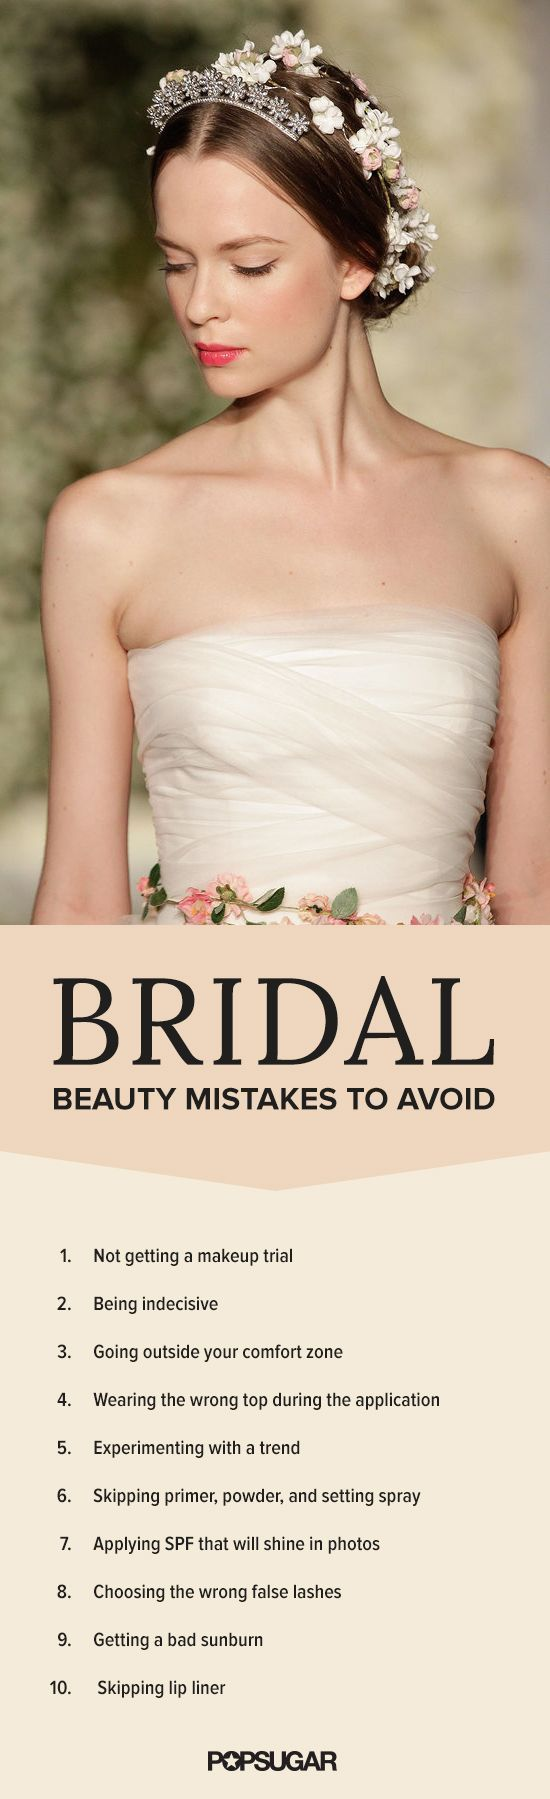 These are the beauty mistakes you need to avoid on your wedding day. Whether you're hiring a makeup artist or going the DIY route, here are the beauty tips you need to know before you get married.